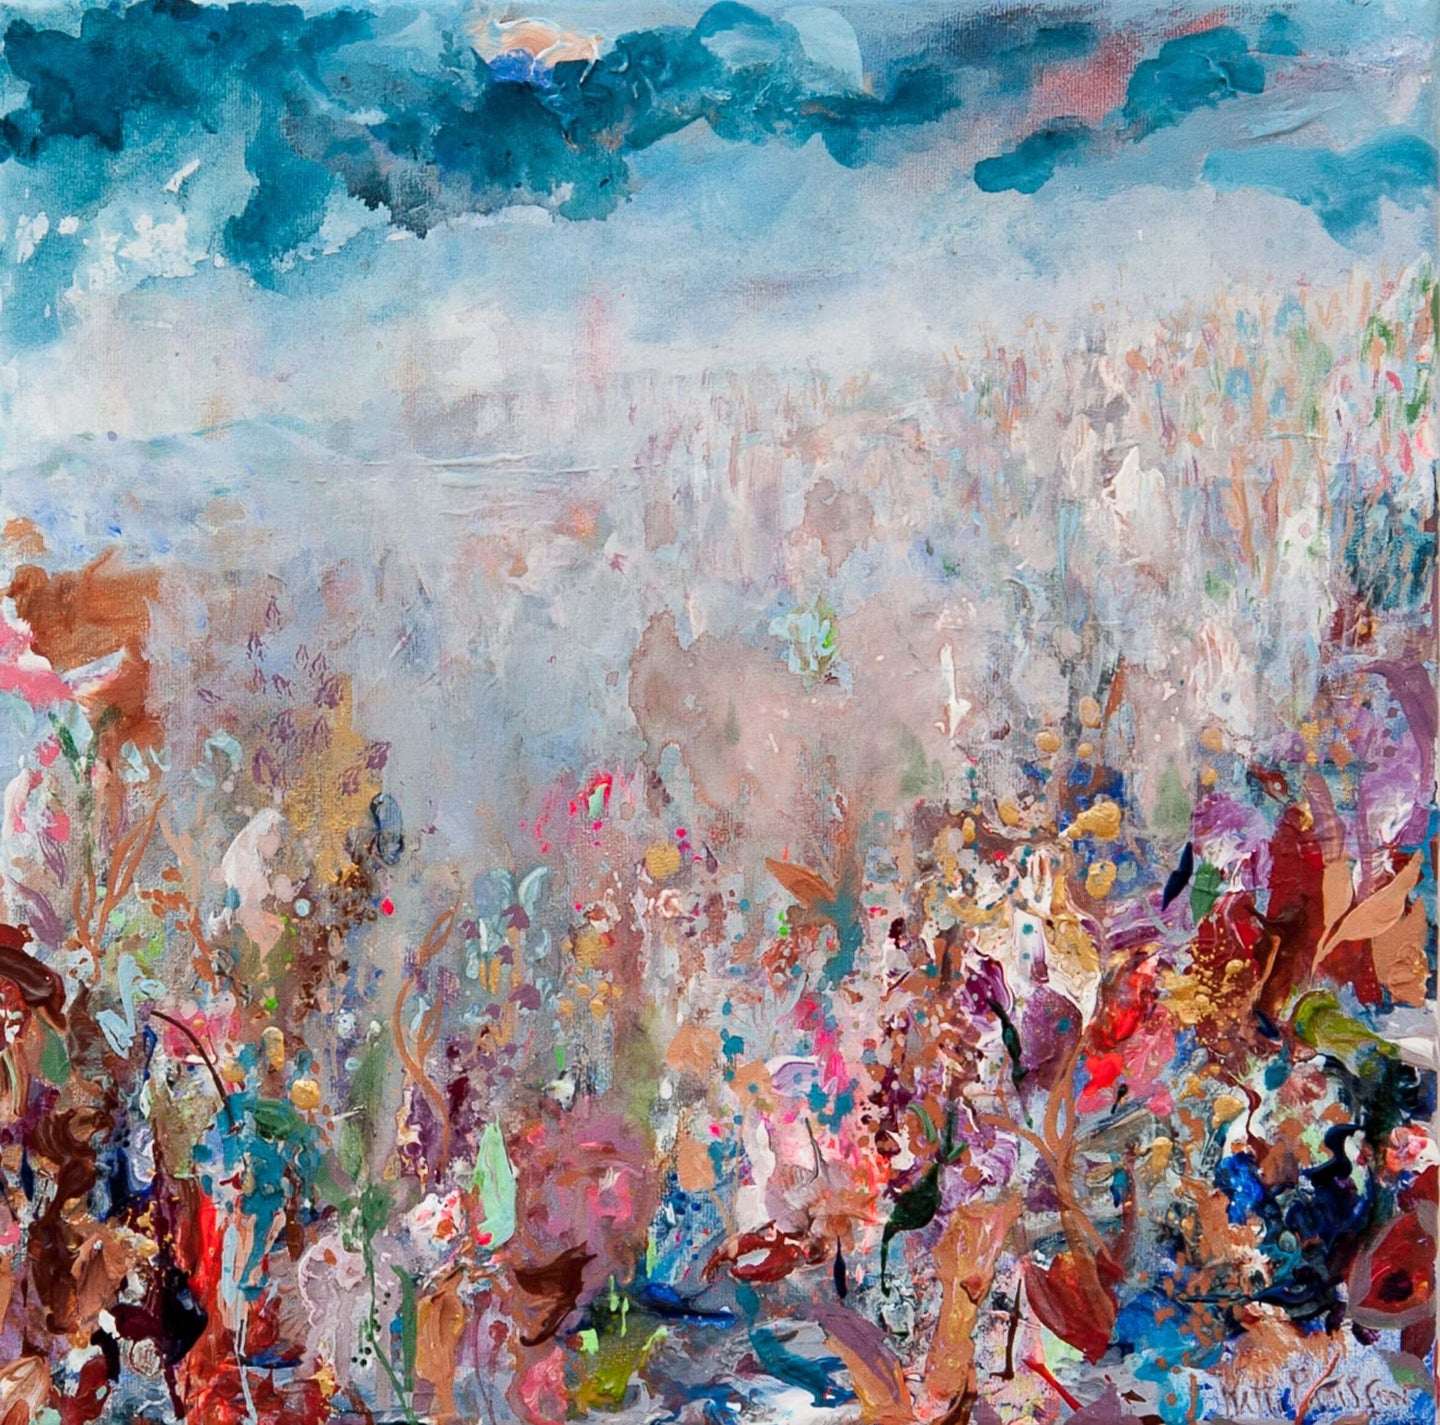 Halcyon Haze hand finished print by Hatti Pattisson for AUTHOR's collection of British-made luxury art